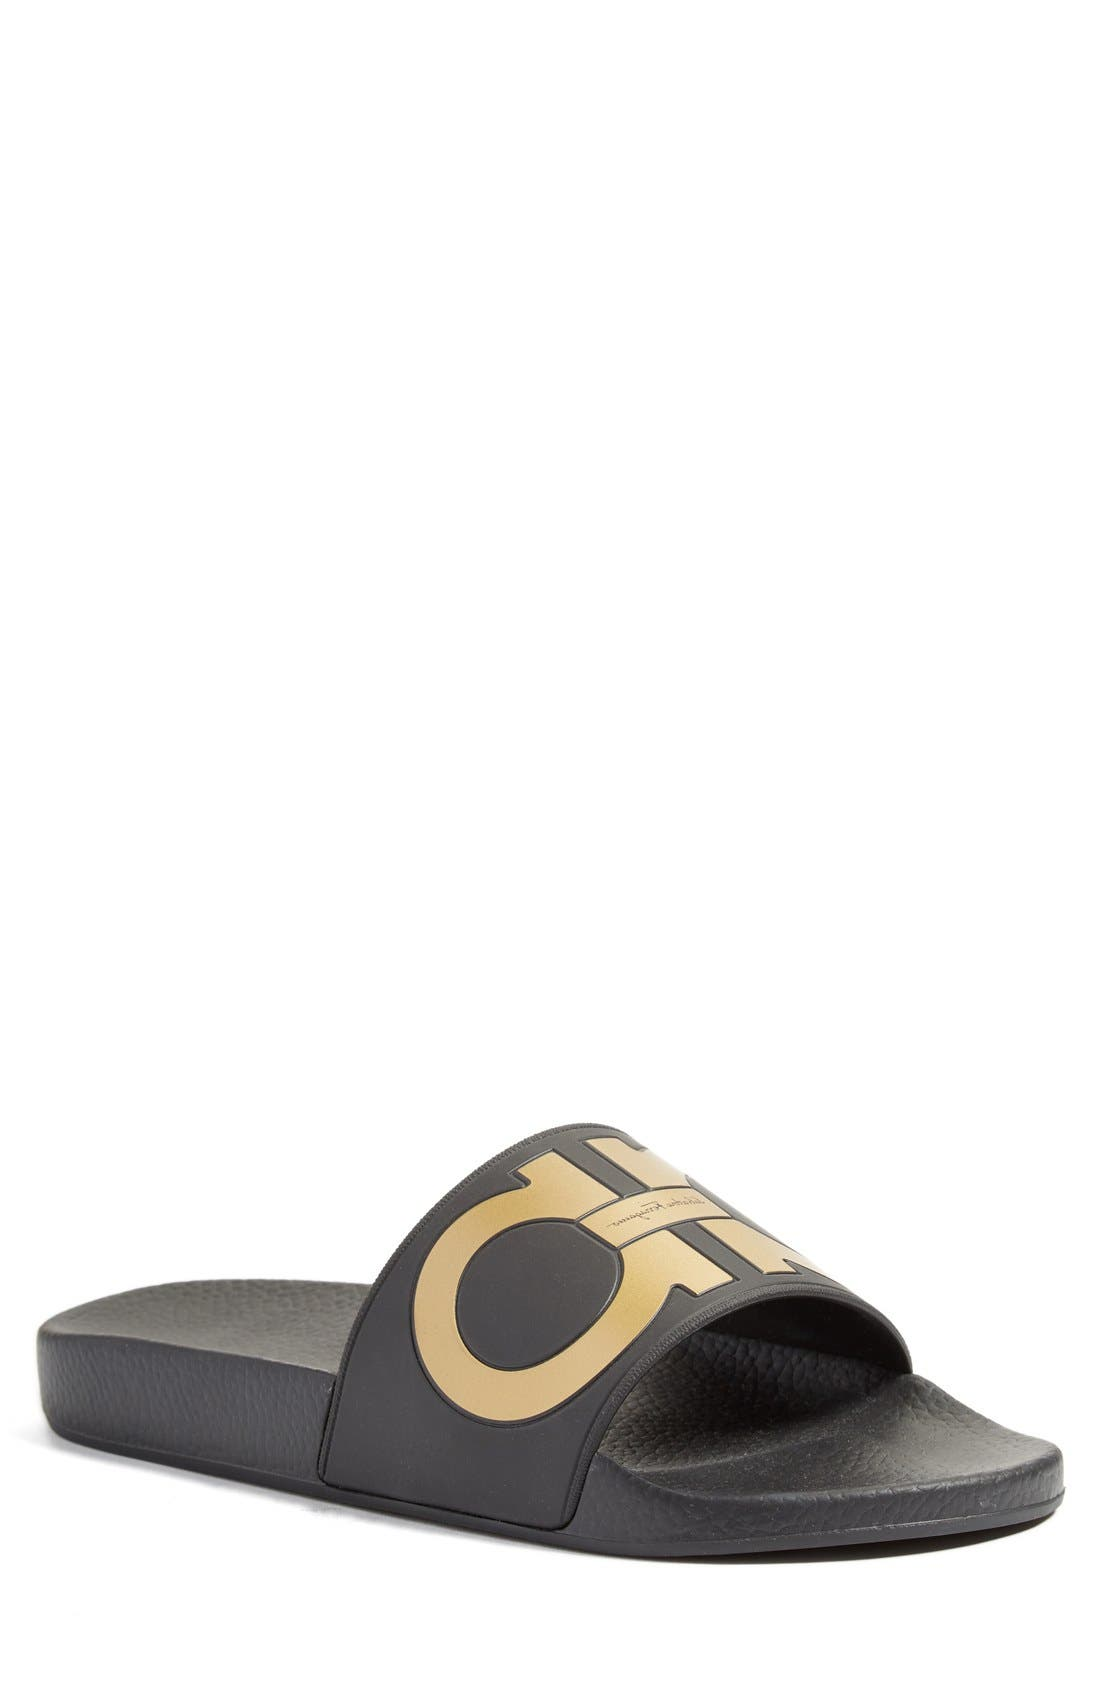 Main Image - Salvatore Ferragamo 'Groove' Slide Sandal (Men)